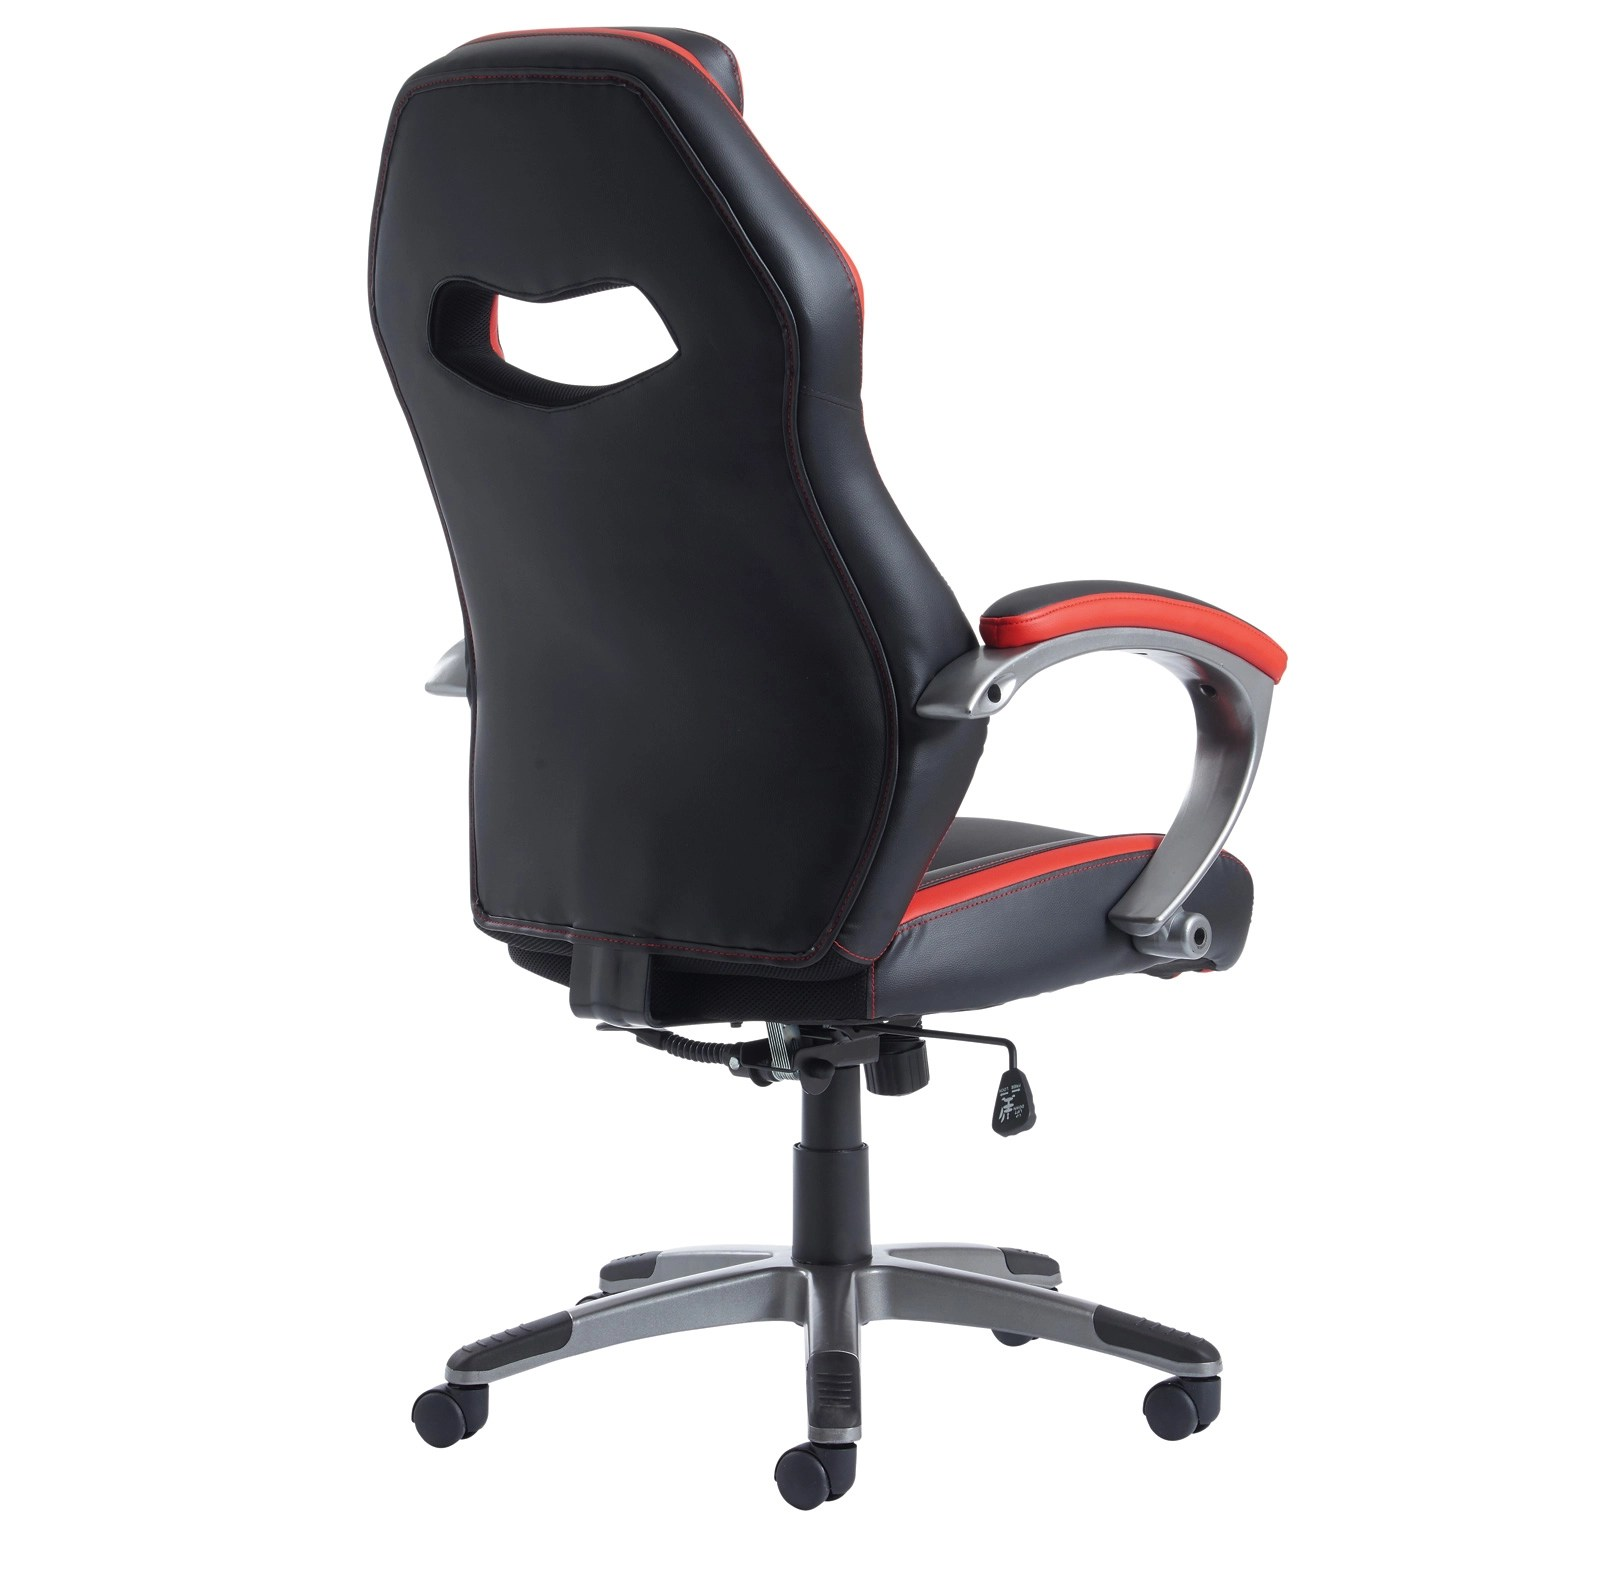 red leather desk chair stool translate to chinese jenson black and office